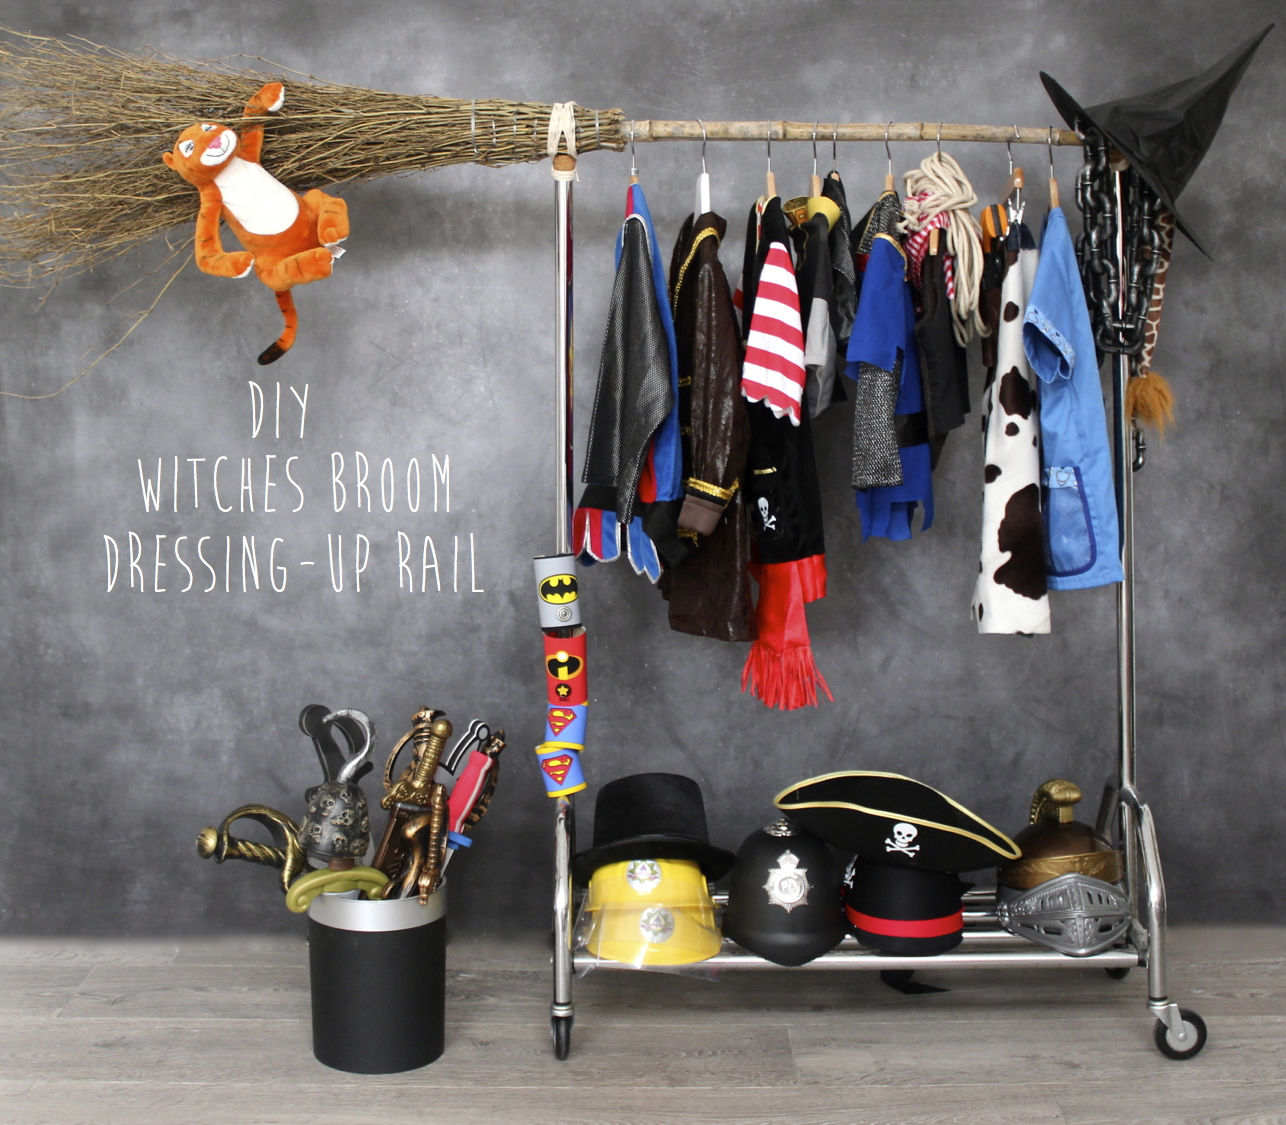 DIY Witches Broom Dress Up Rail